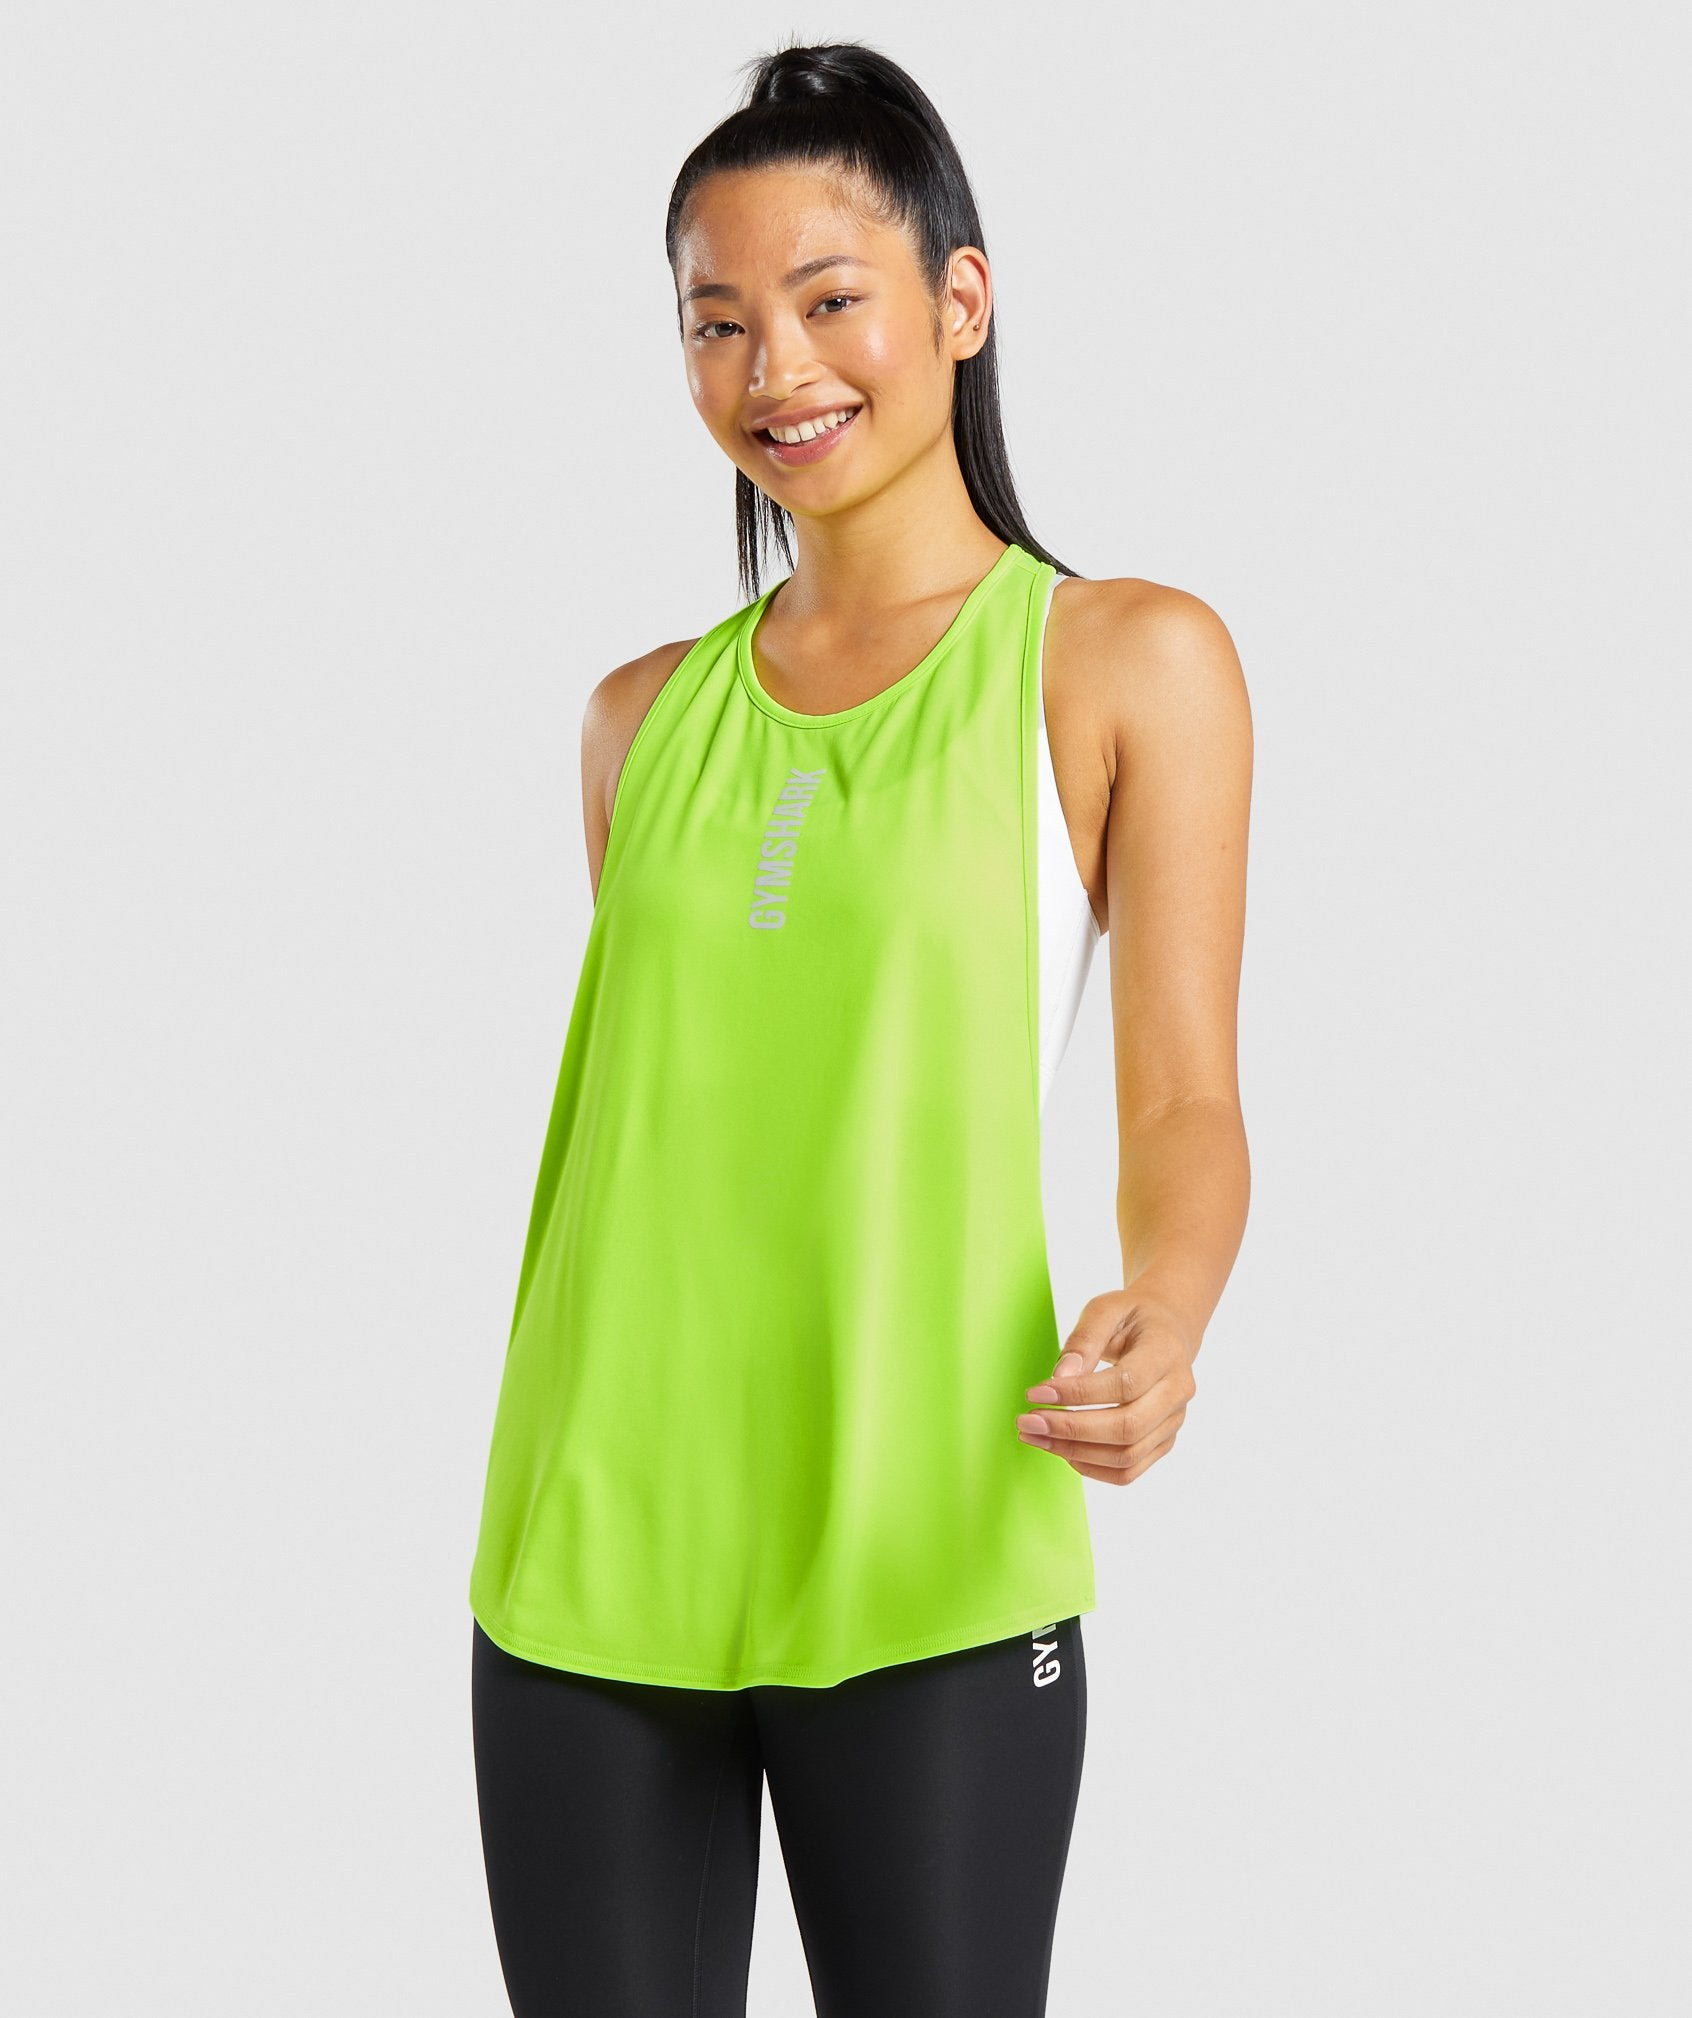 Classier: Buy Gymshark Pulse Drop Arm Tank - Green - Gymshark